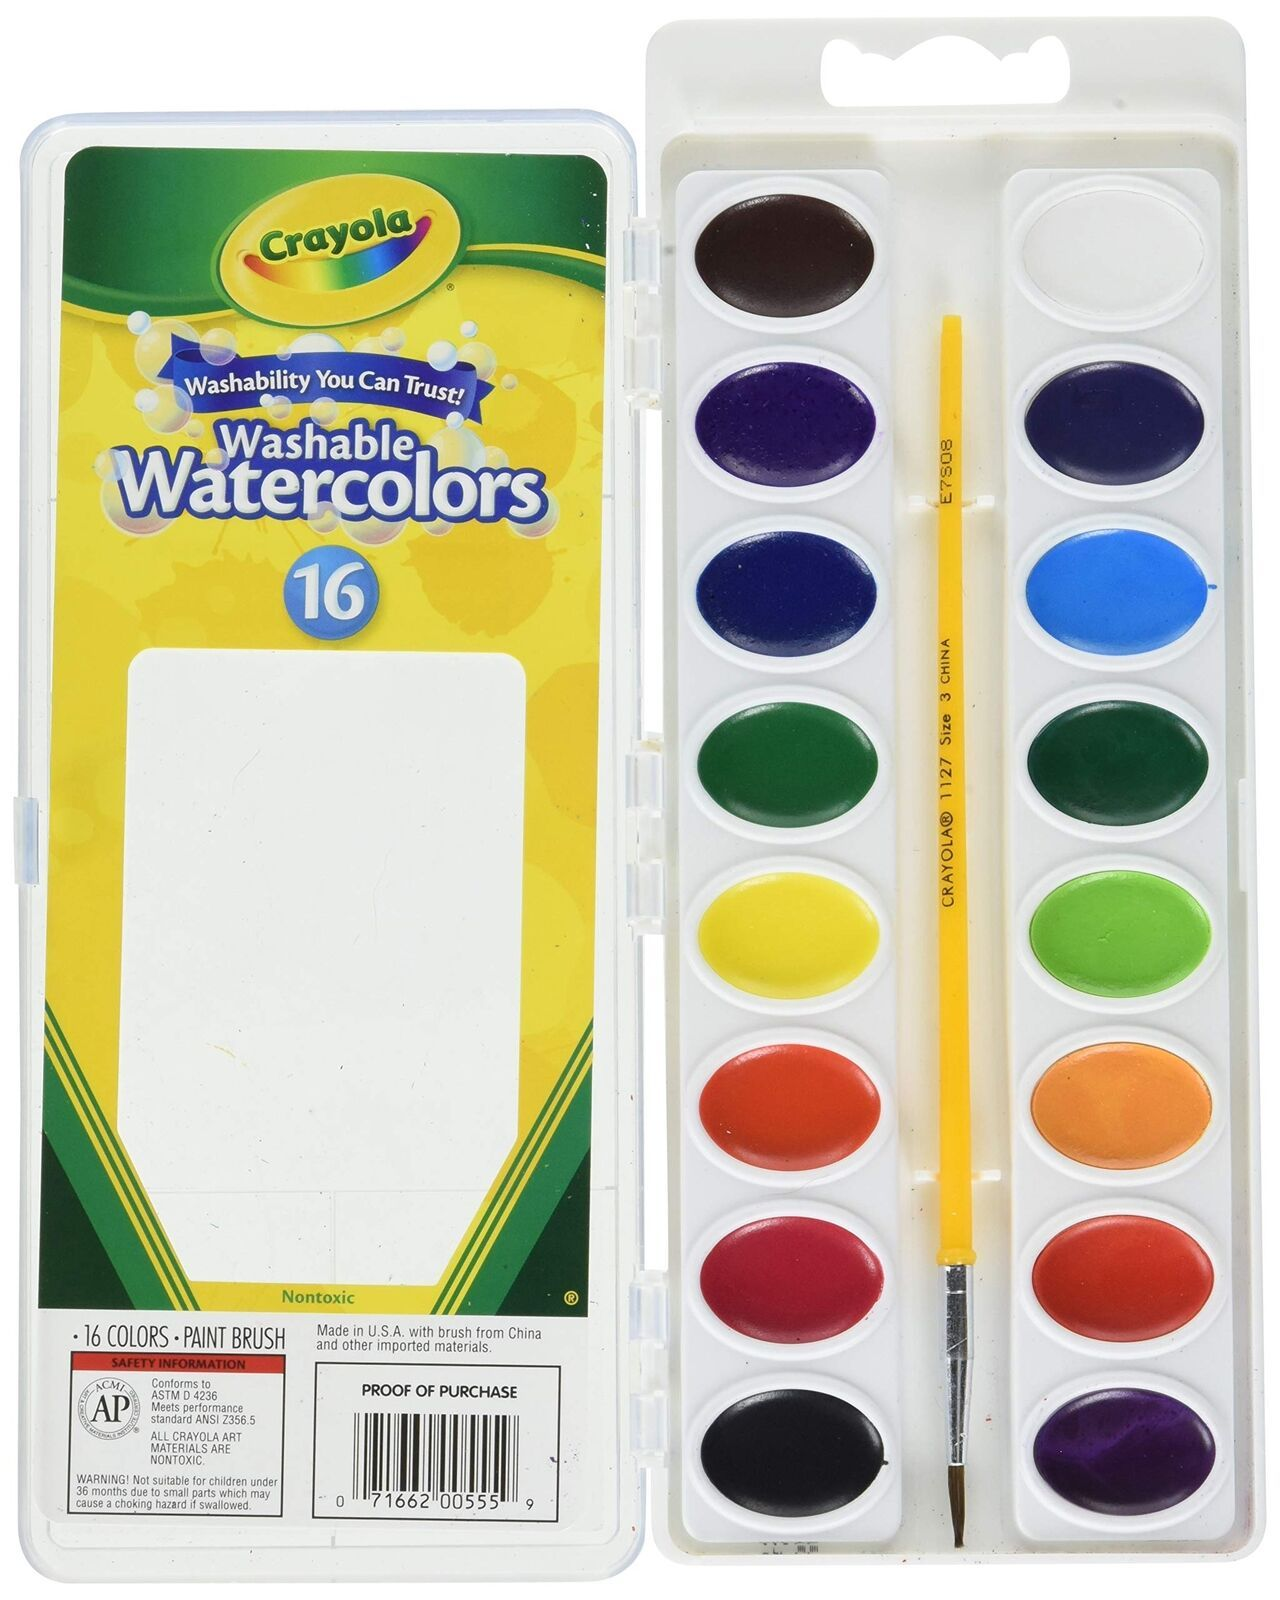 New Crayola Crayola Washable Watercolors 16 Count Pack Of 2 Total